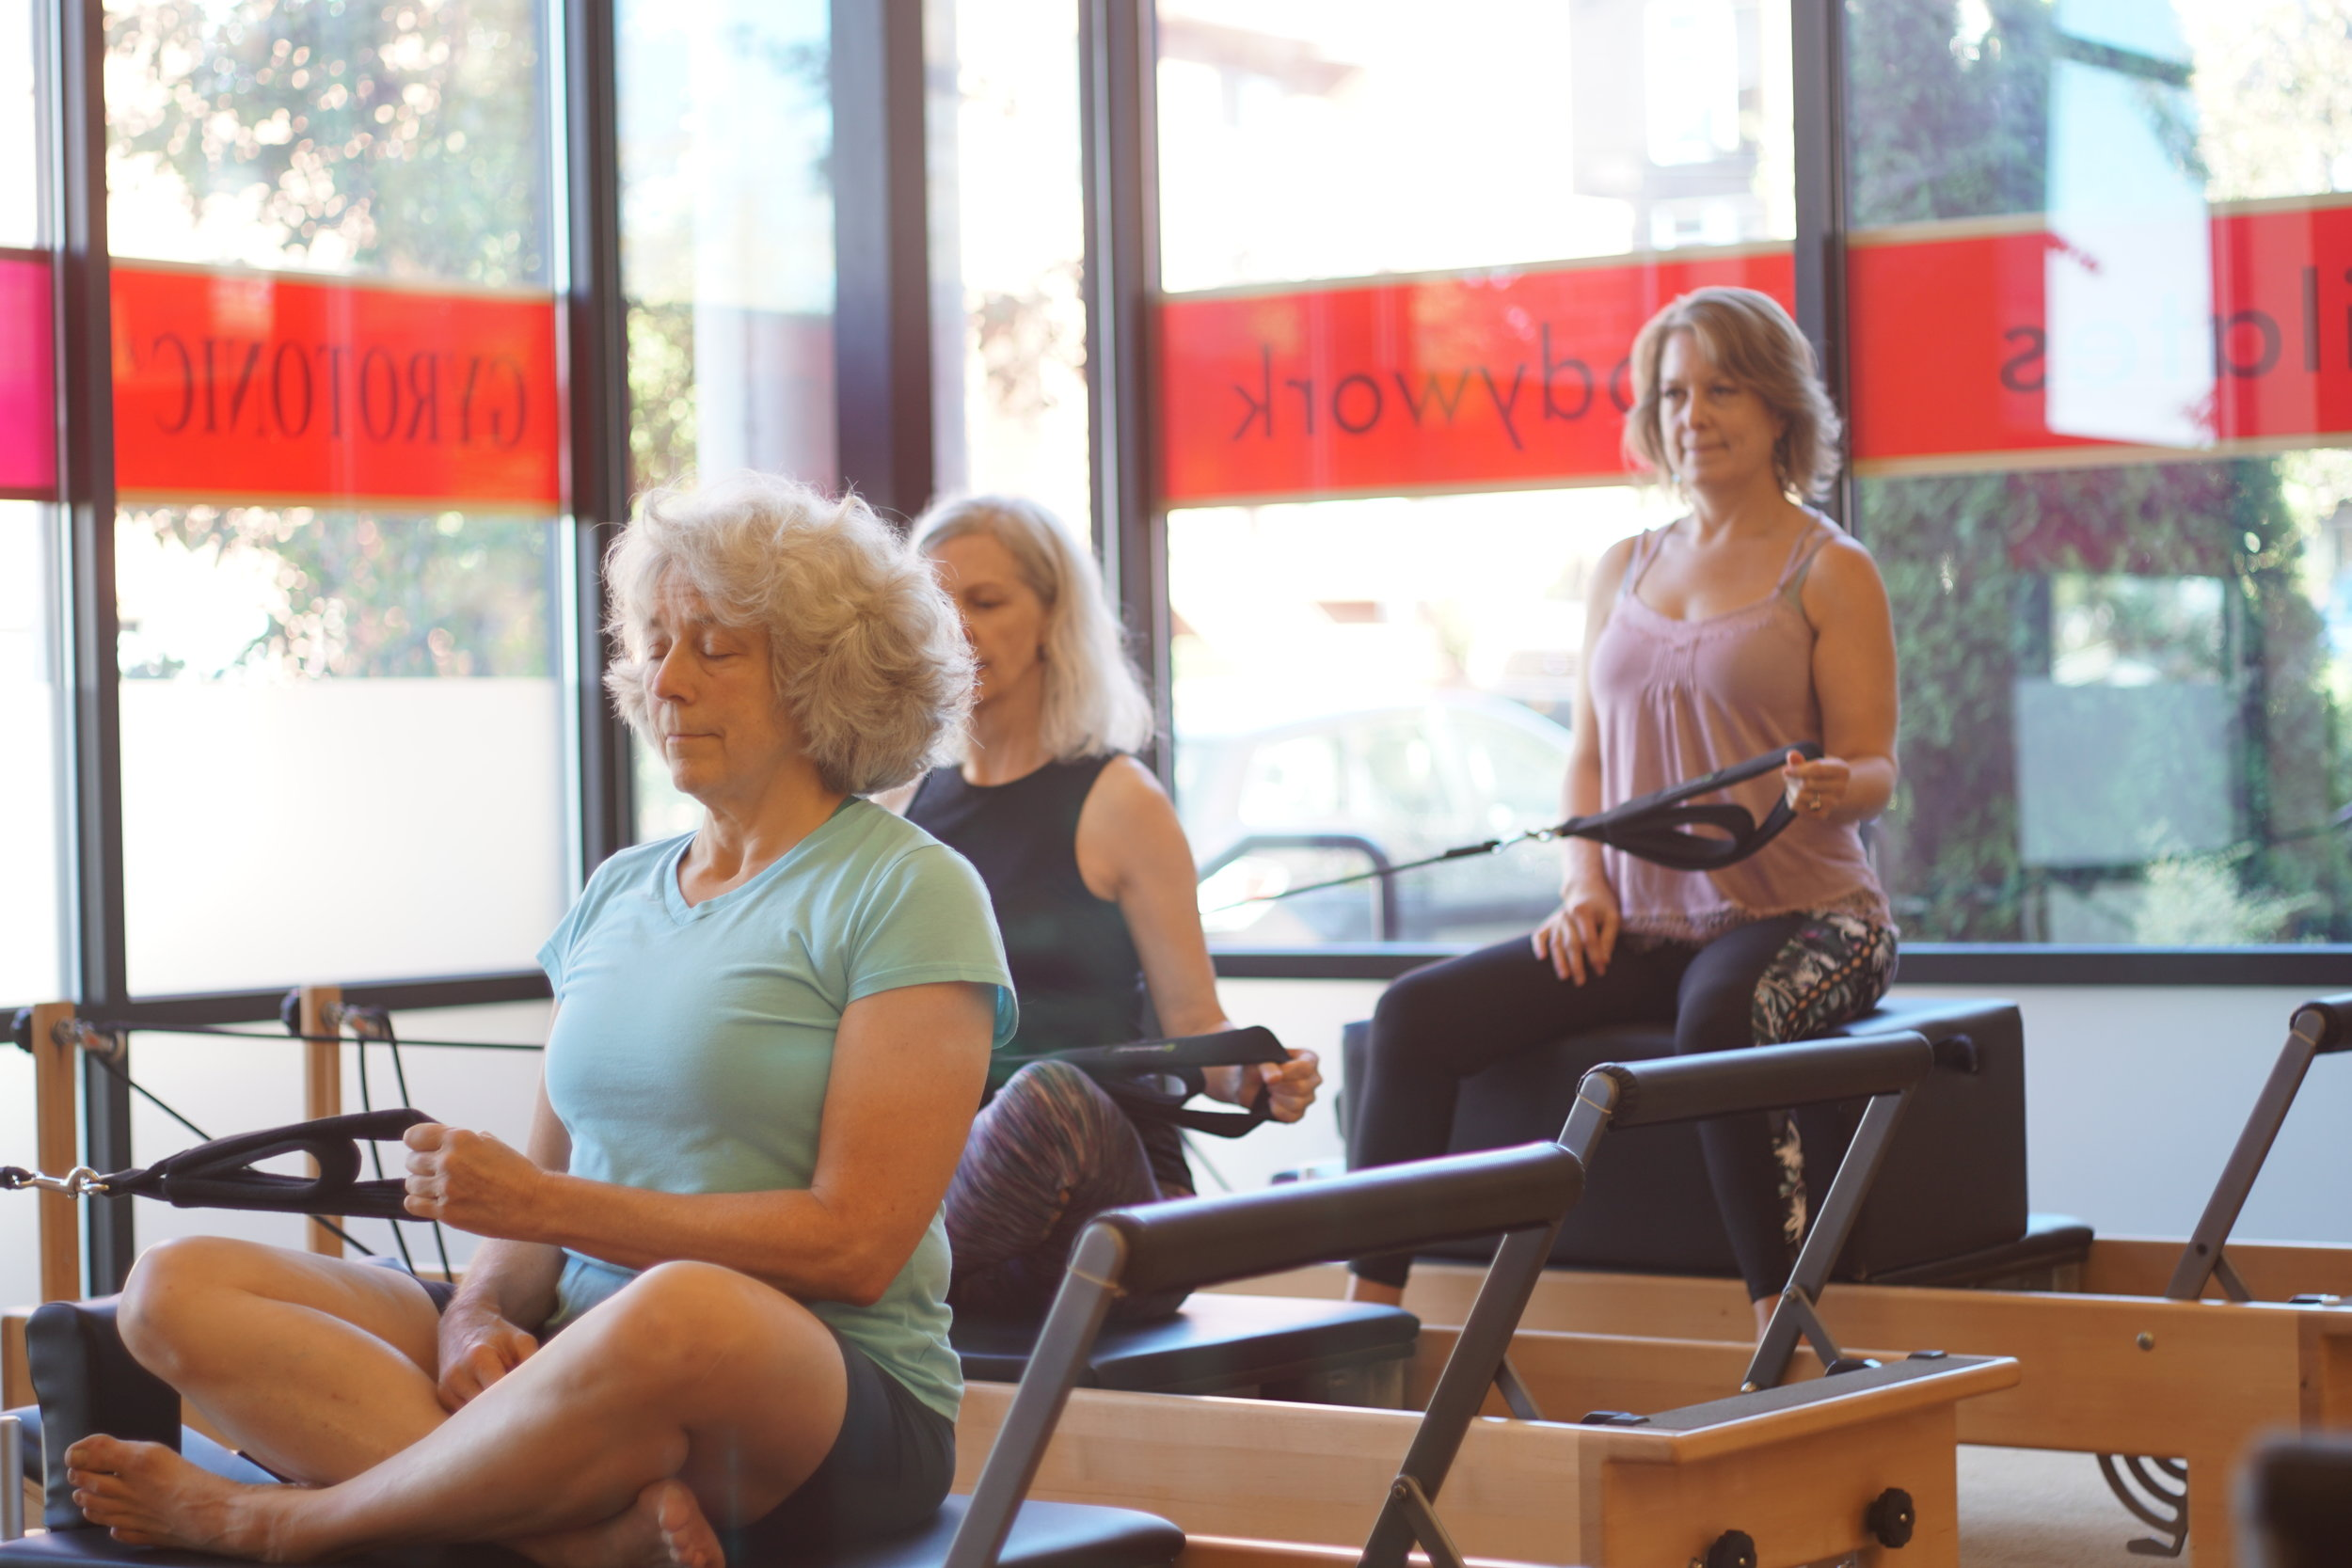 seattle-pilates-fitness-women